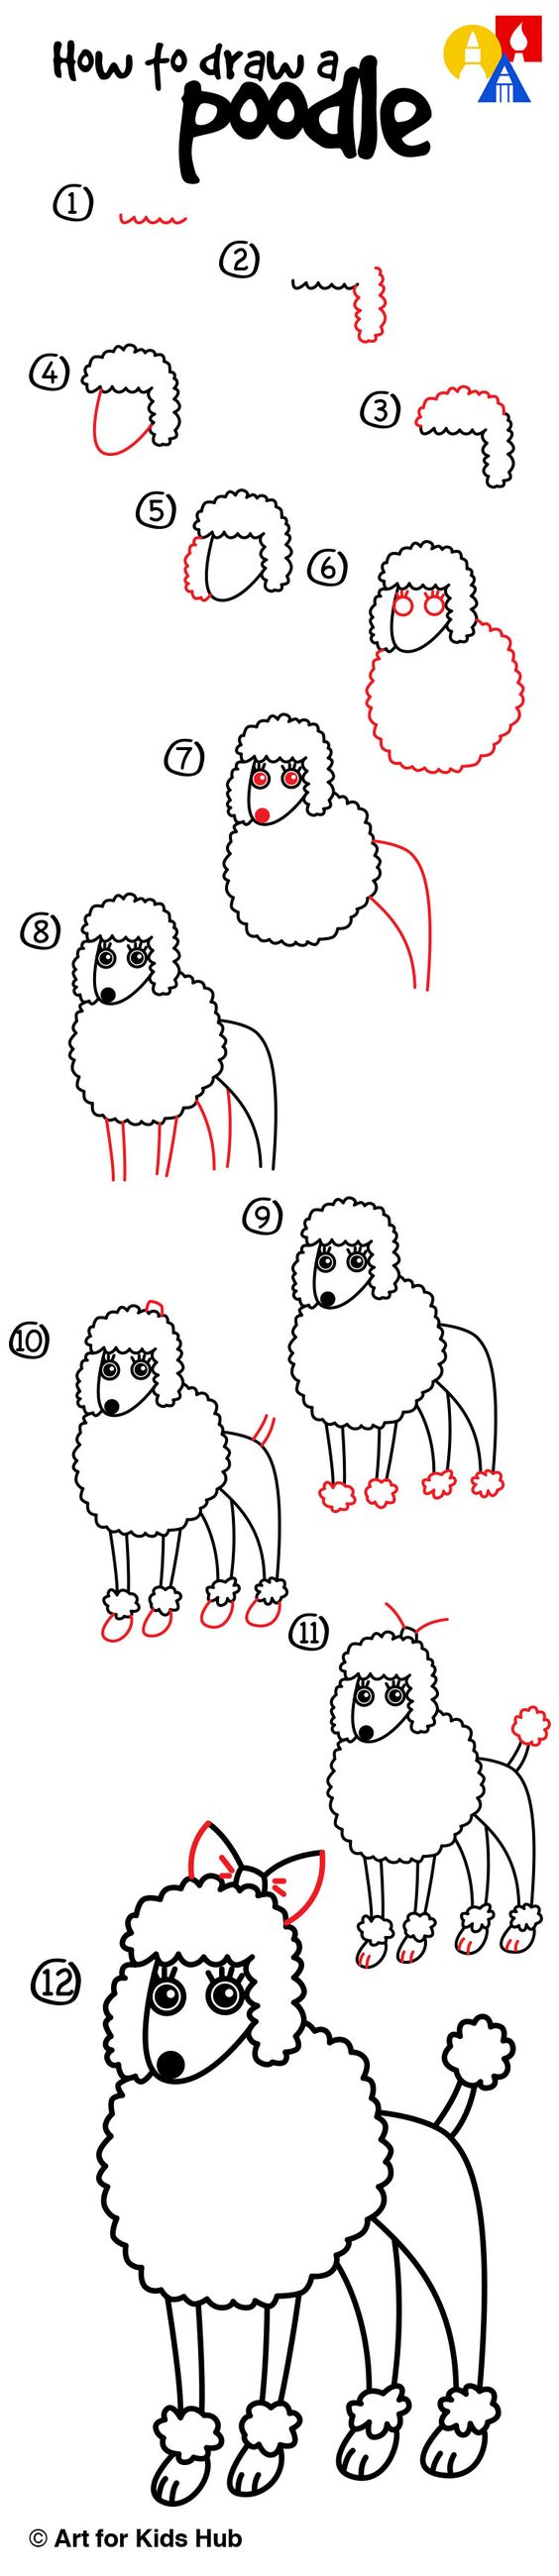 Hey Art Friends, Learn How To Draw A Poodle In A Few Simple Steps Watch  Our Video And Follow Along To Draw Your Own